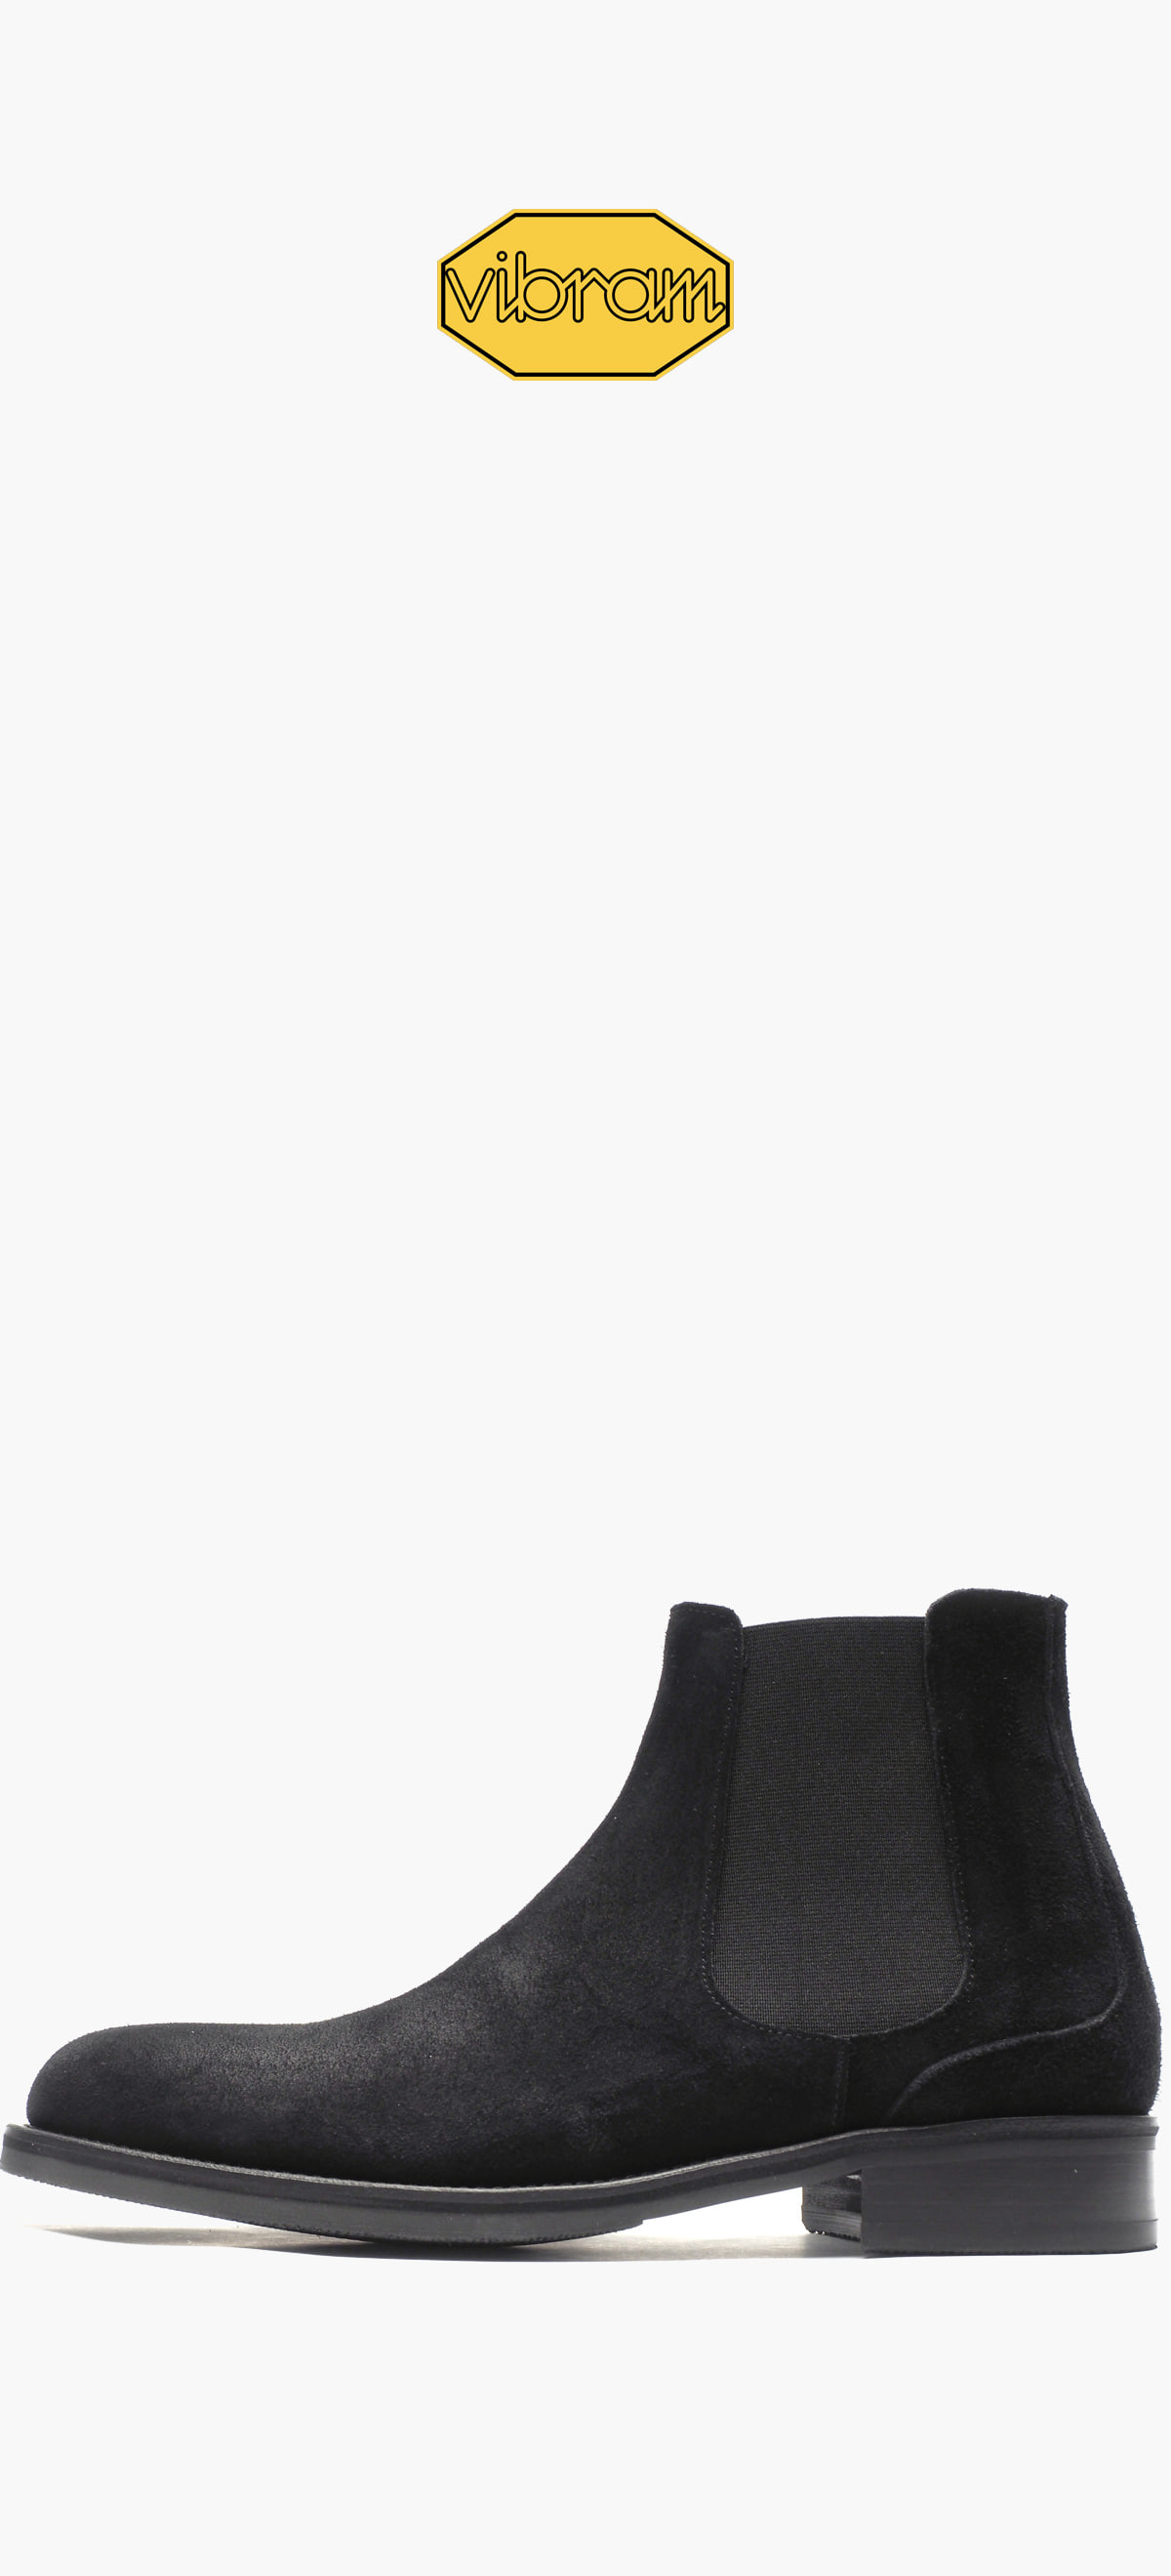 Chelsea Boots 9003-17 Black Suede